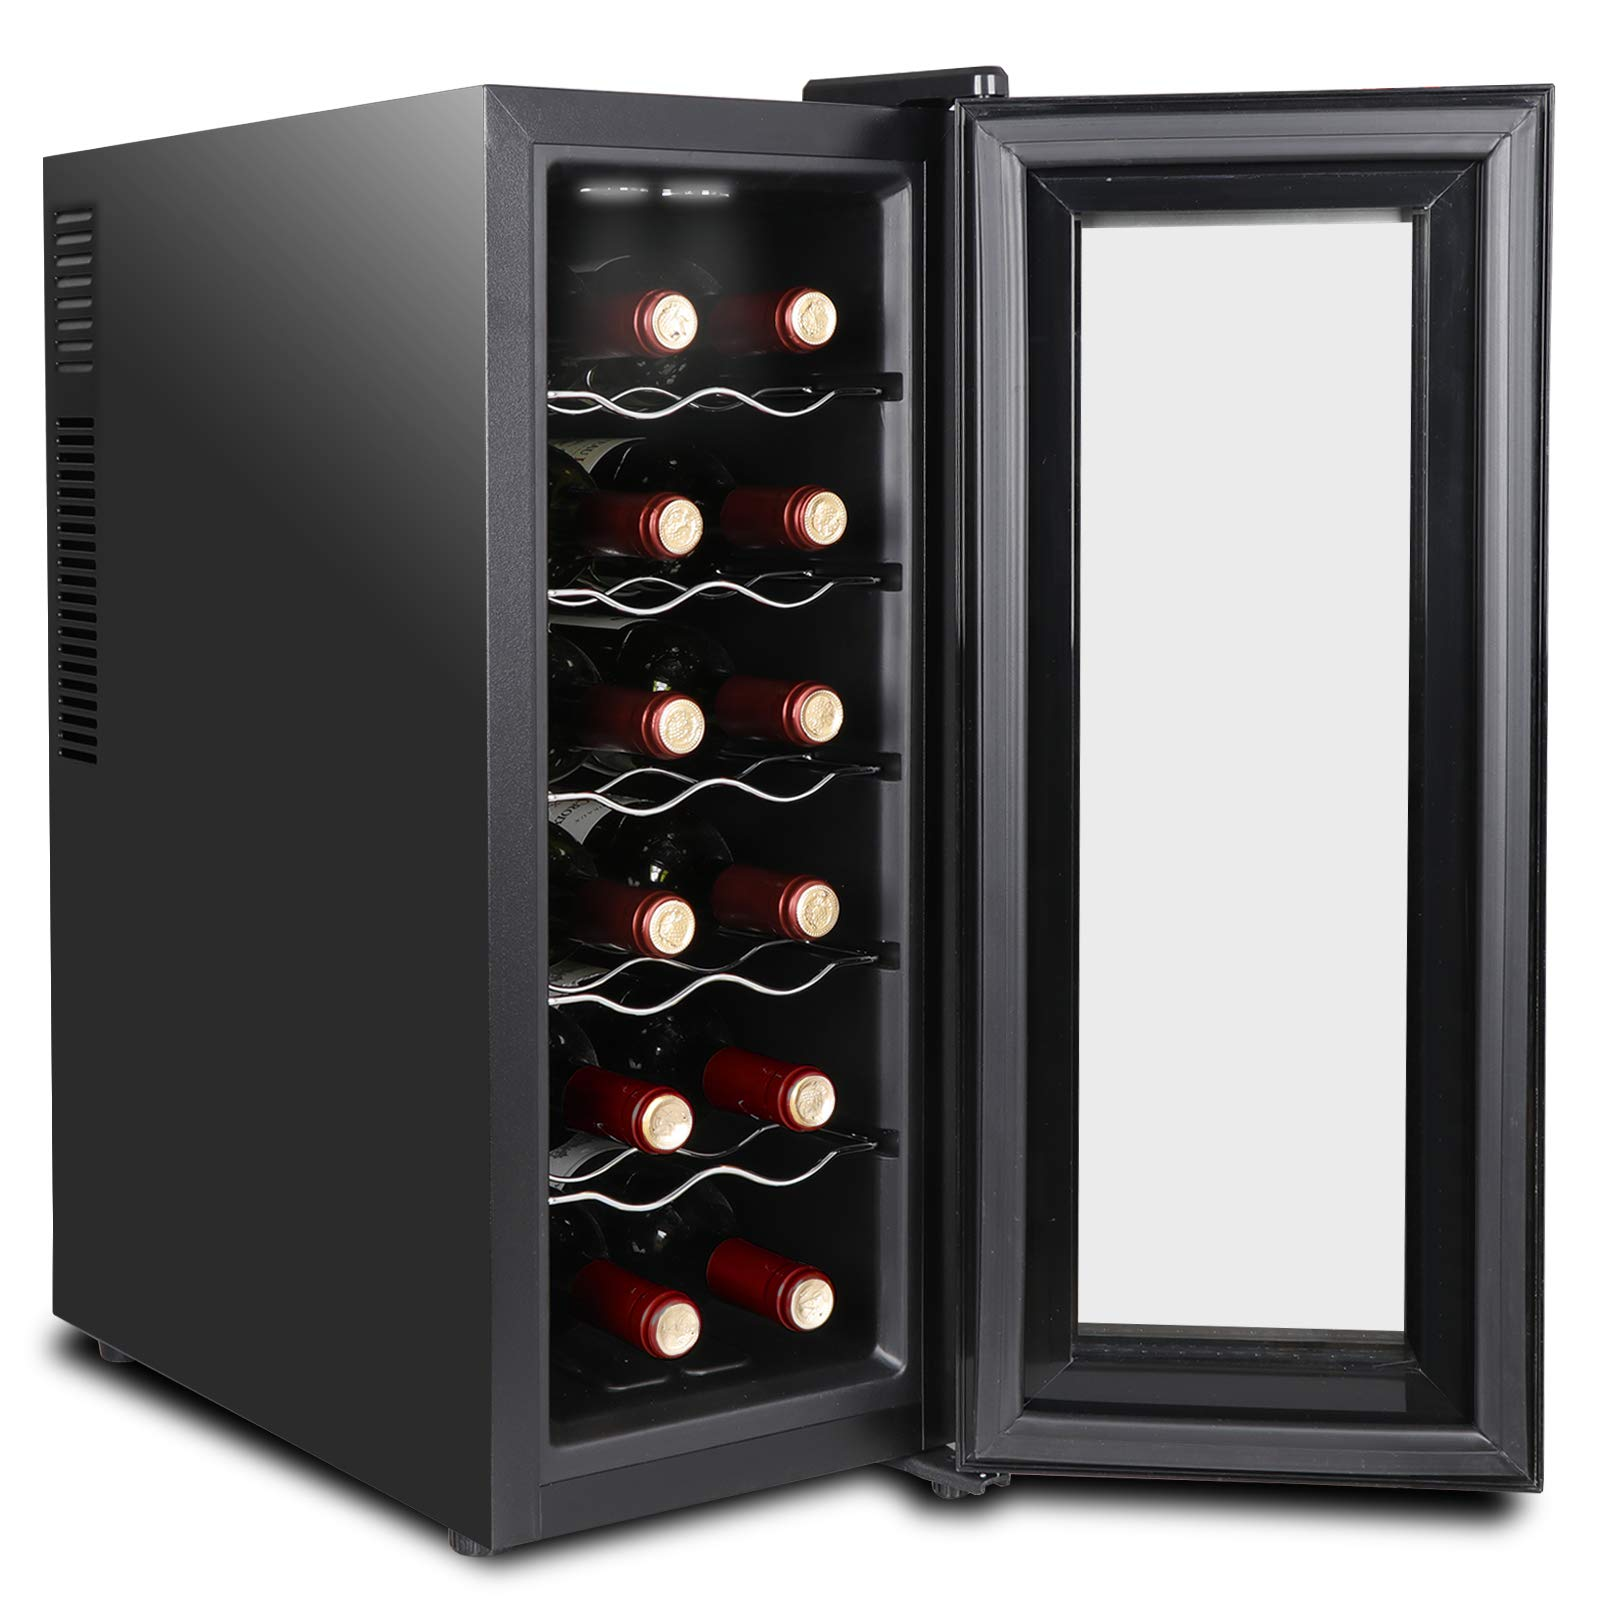 Smartxchoices 12 Bottle Wine Cooler Refrigerator Thermoelectric, Digital Temperature Display Wine Chiller, Counter Top Wine Cellar with Touch Controls,Sliding Racks, Smoked Glass Door, Black